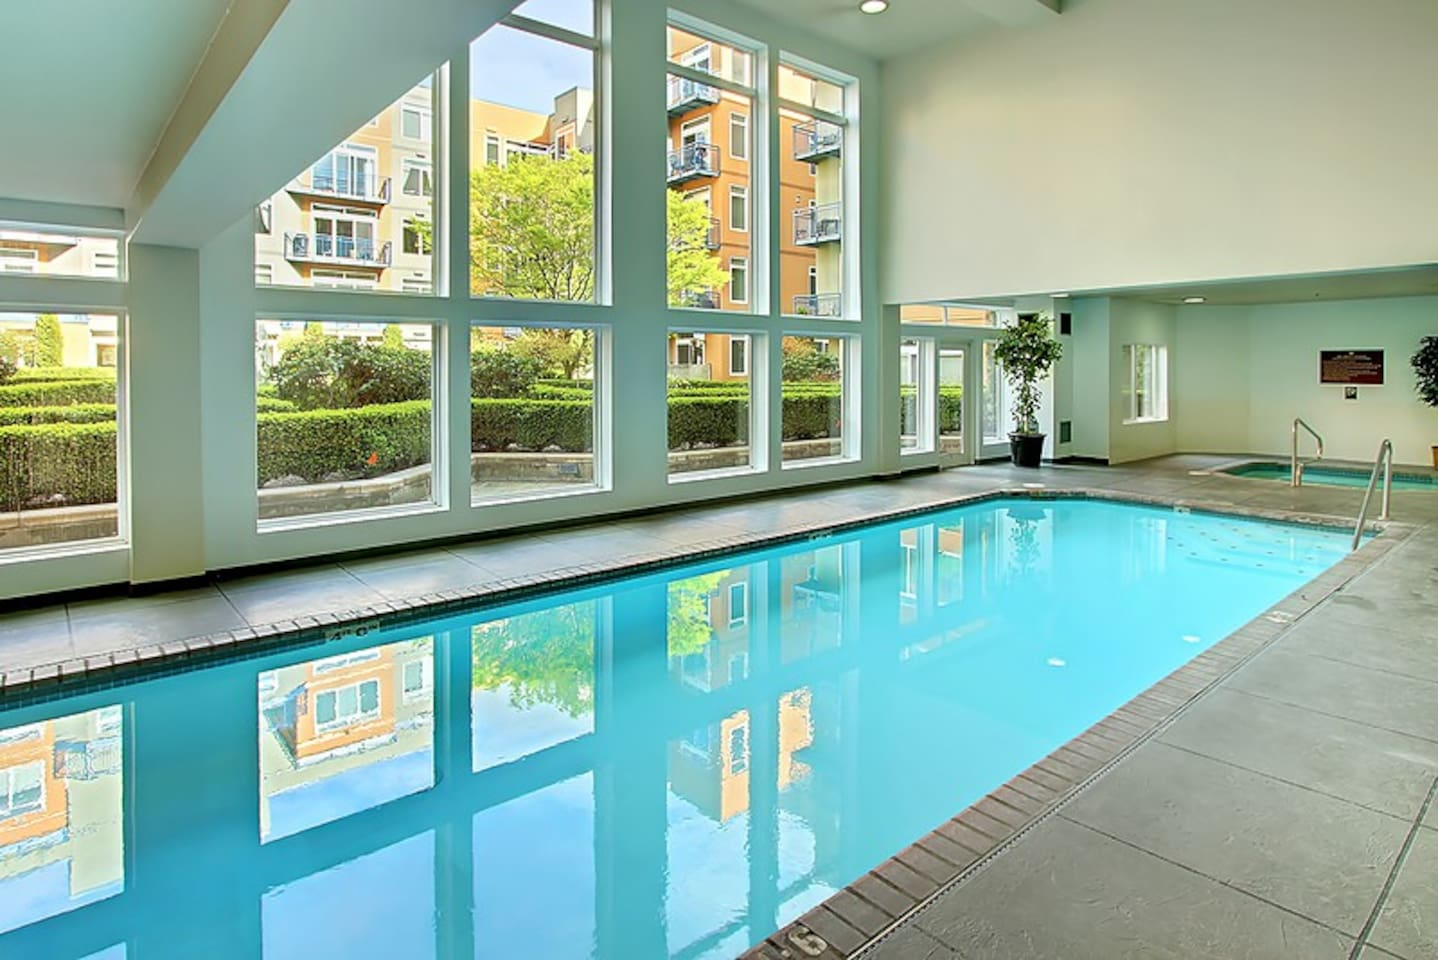 Pool, Hot Tub, And Dry Sauna are hardly ever used by residents of the building!